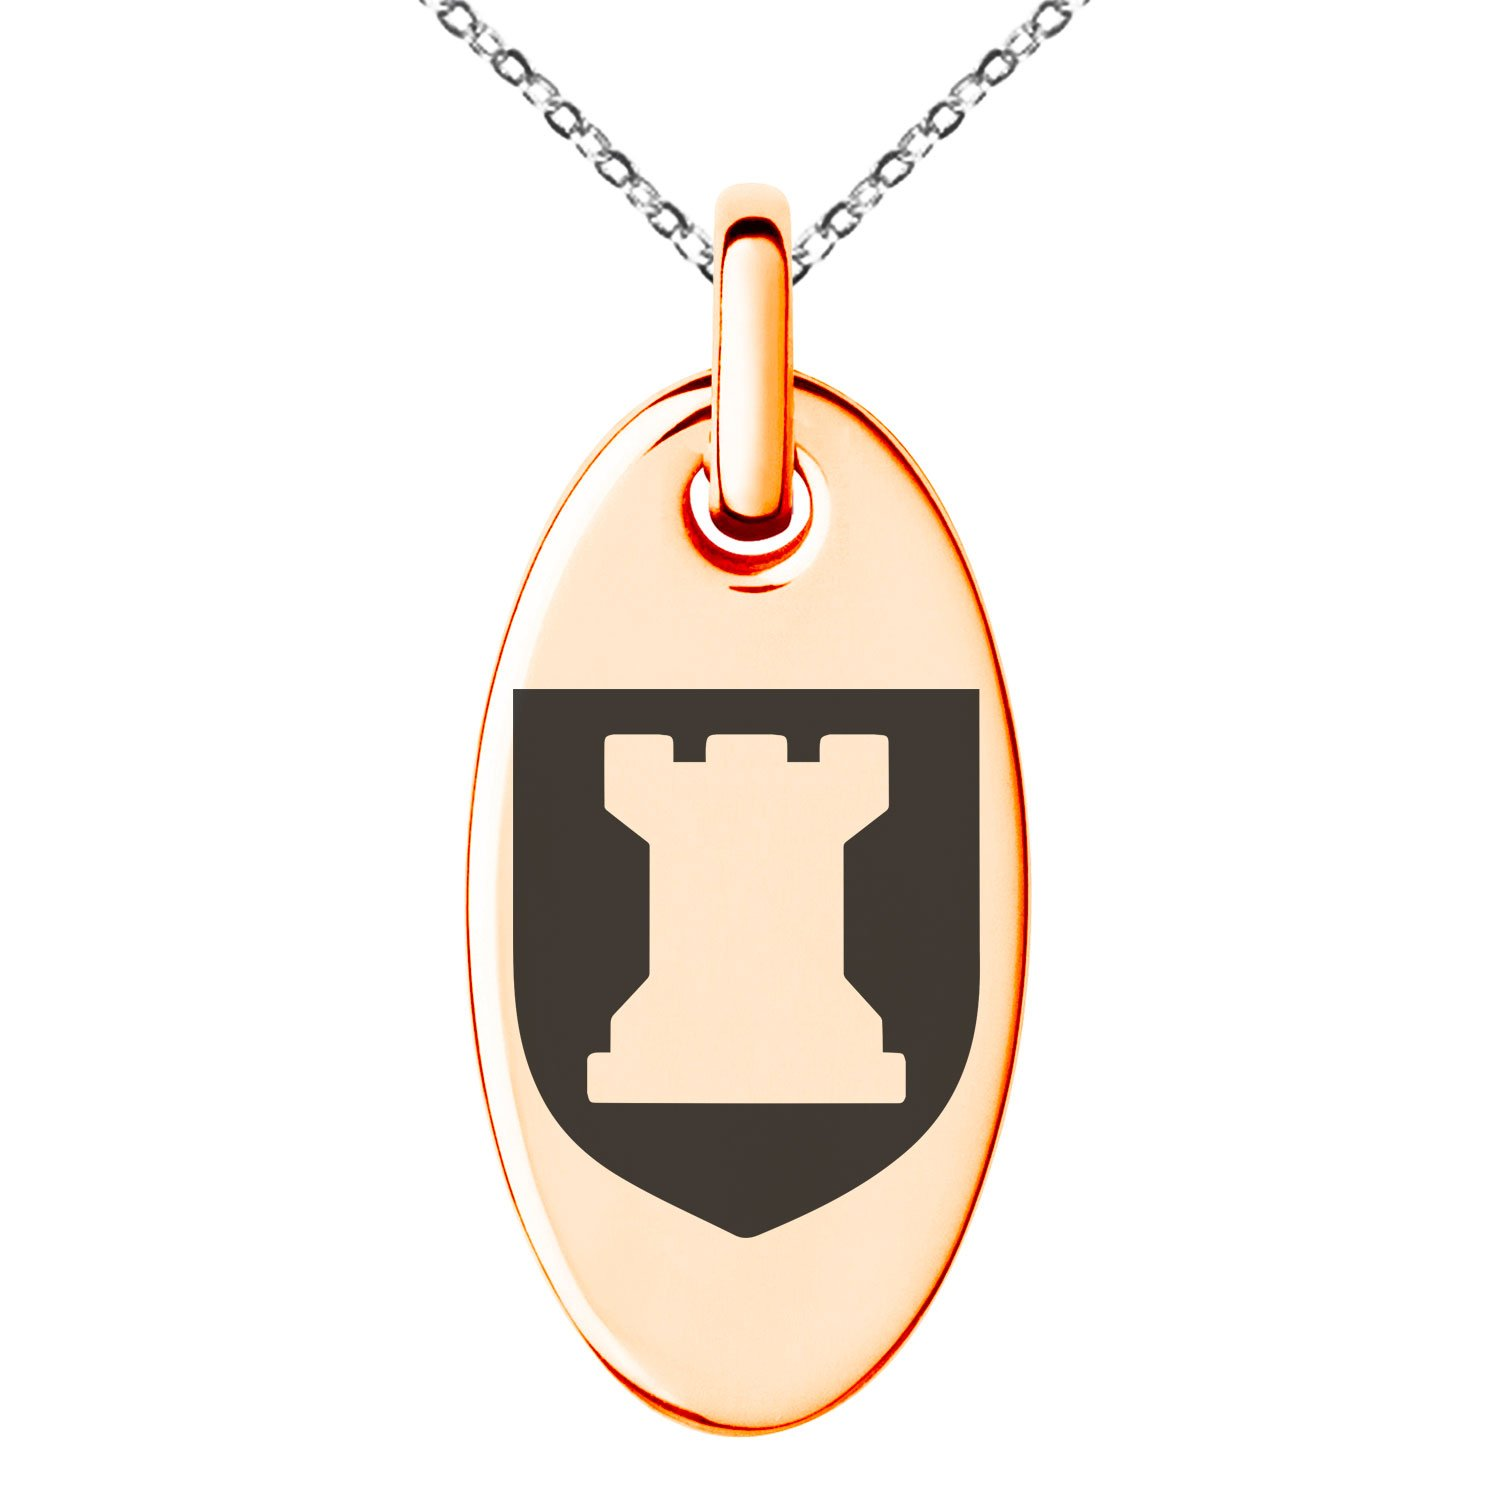 Tioneer Rose Gold Plated Stainless Steel Rook Strategy Coat of Arms Shield Symbol Engraved Small Oval Charm Pendant Necklace